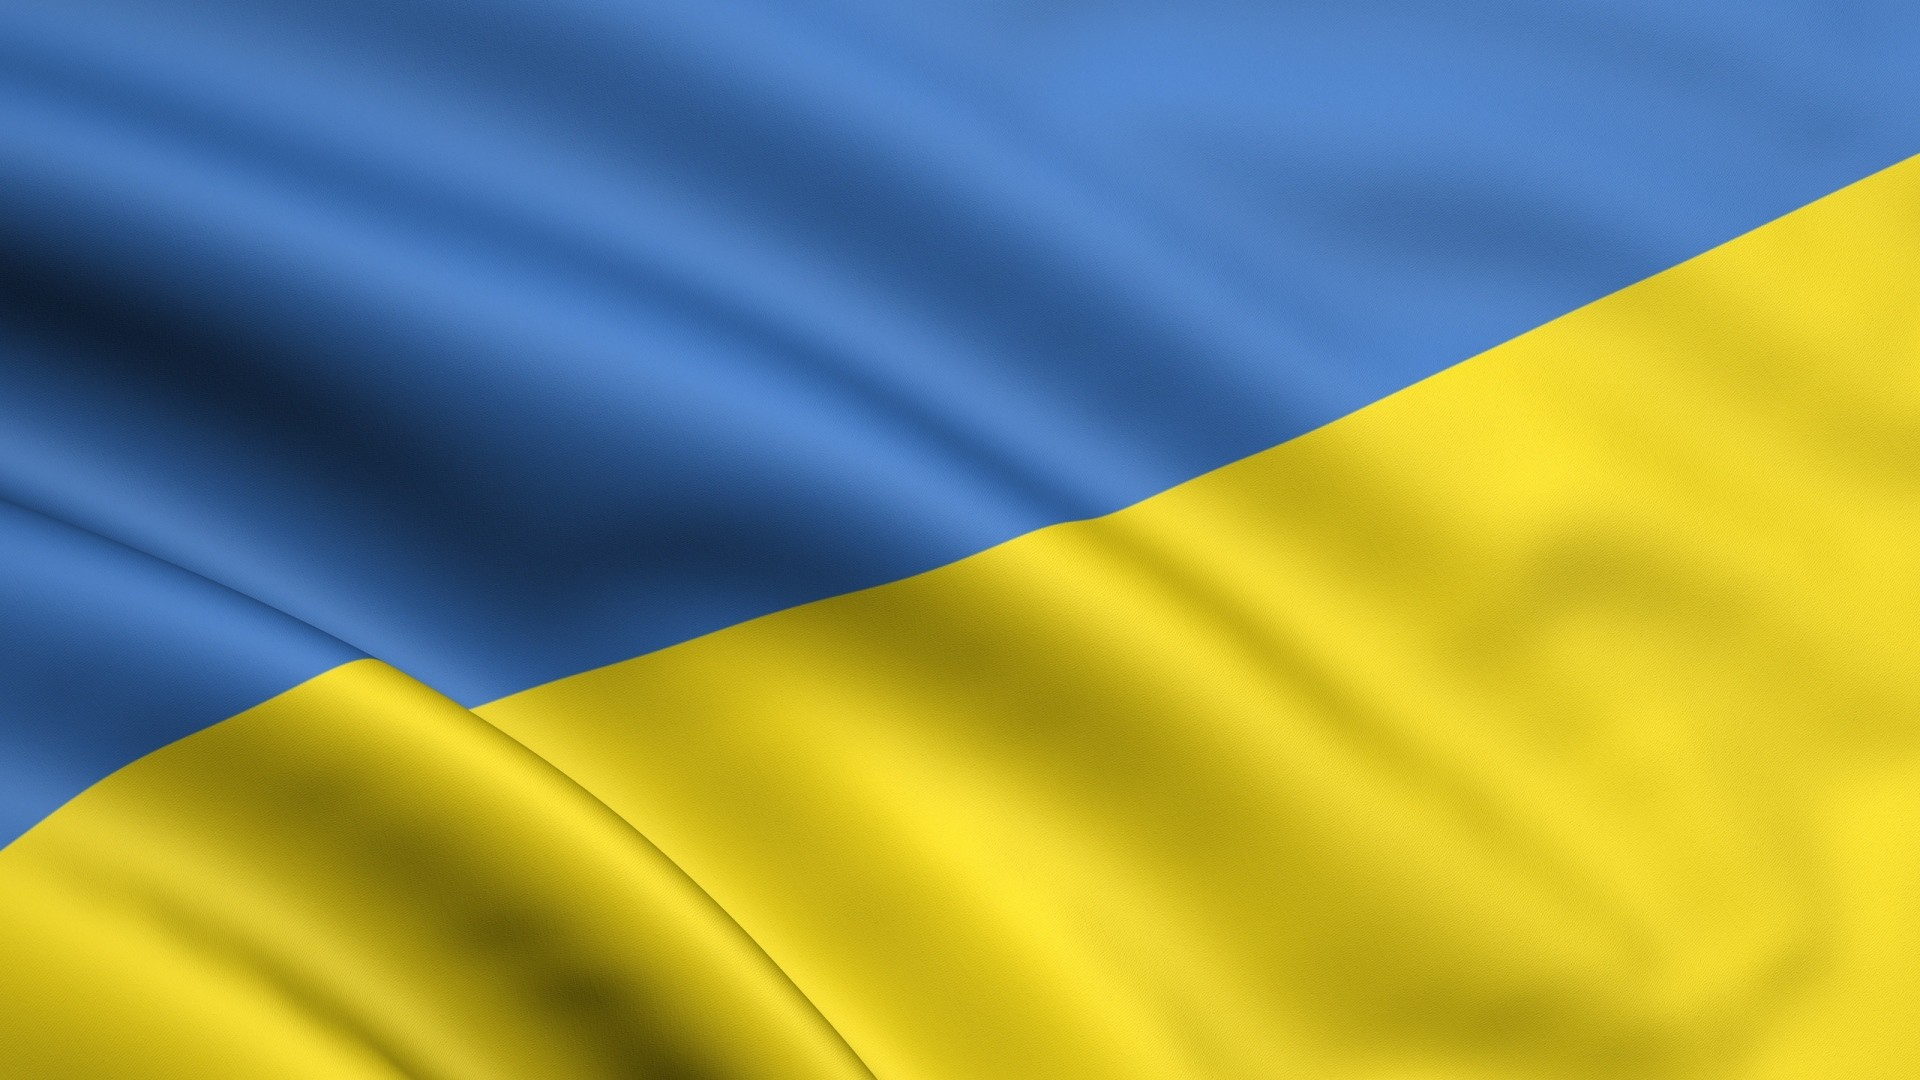 1920x1080  Wallpaper yellow, blue, flag, ukraine